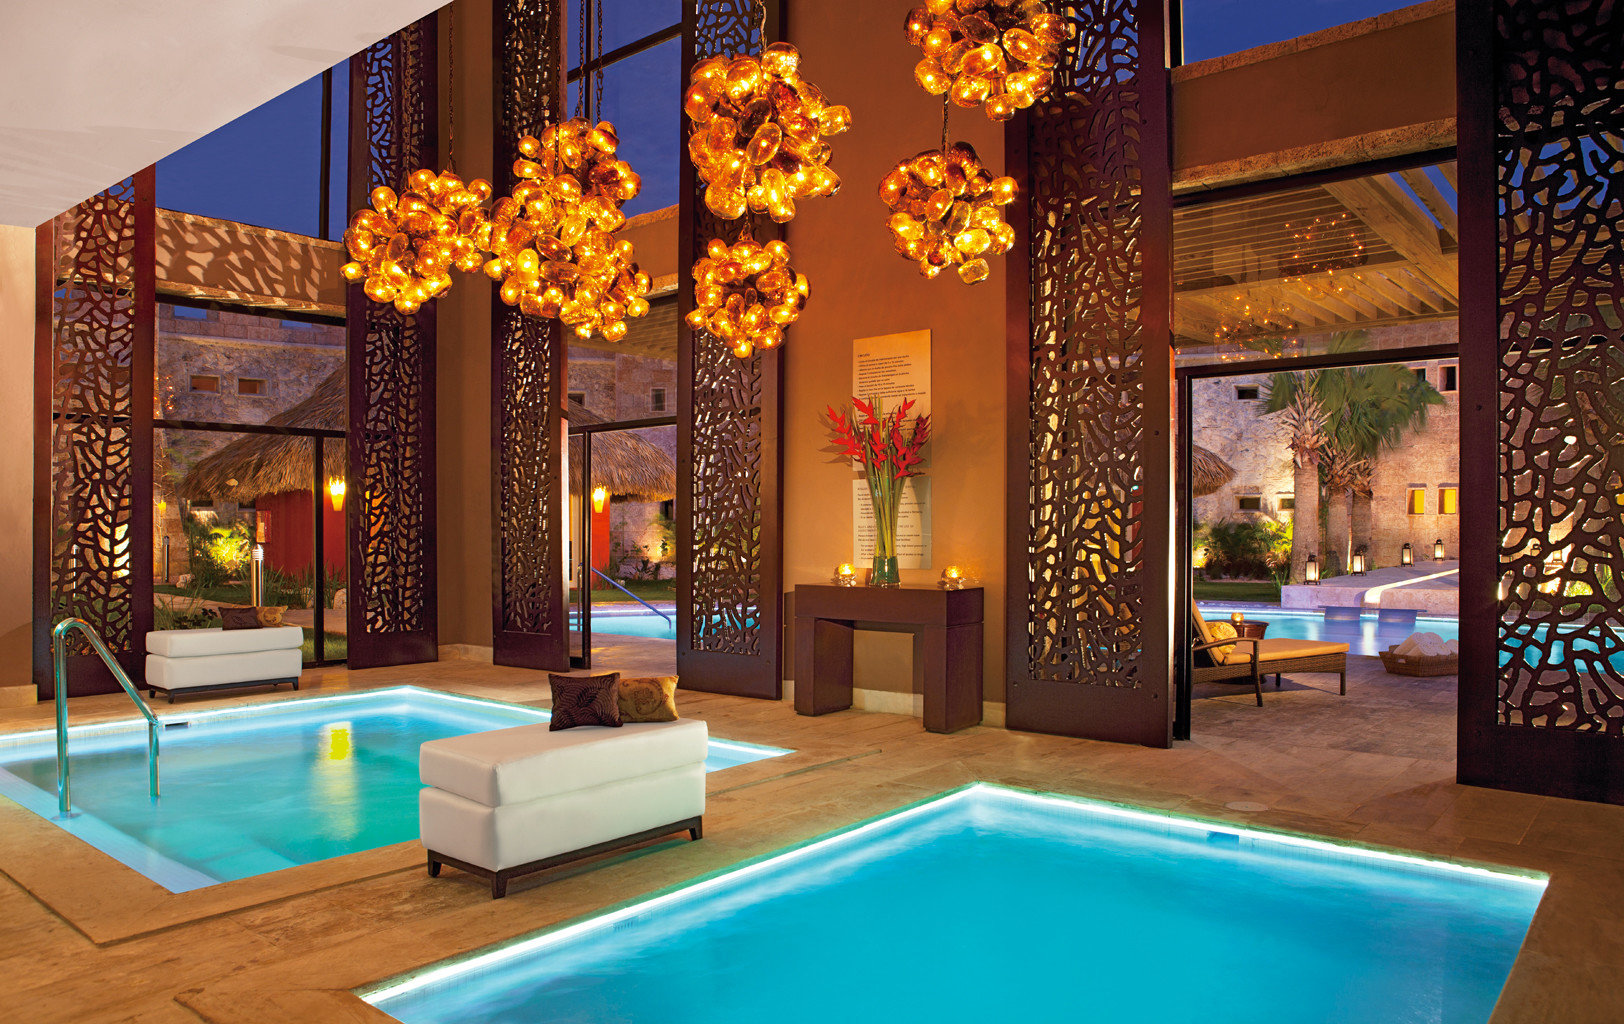 All-Inclusive Resorts Elegant Hot tub/Jacuzzi Hotels Luxury Modern Pool Romance indoor leisure swimming pool estate Resort Lobby interior design mansion blue Villa